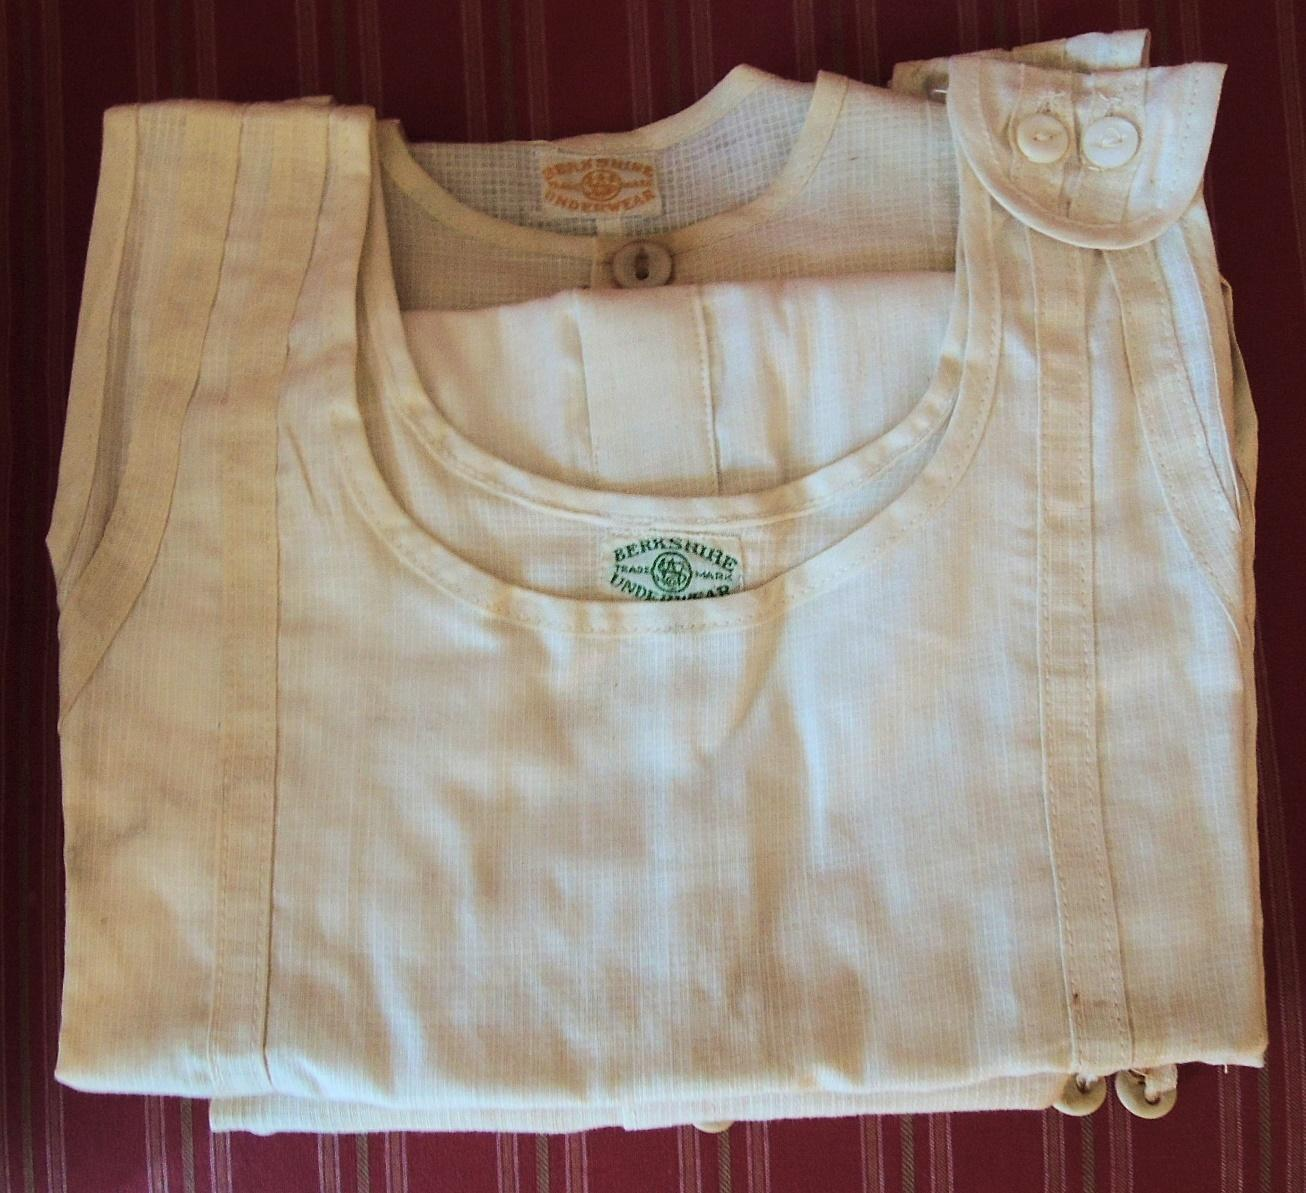 Four Old Store Stock Berkshire Childrens Union Suits with Original Box